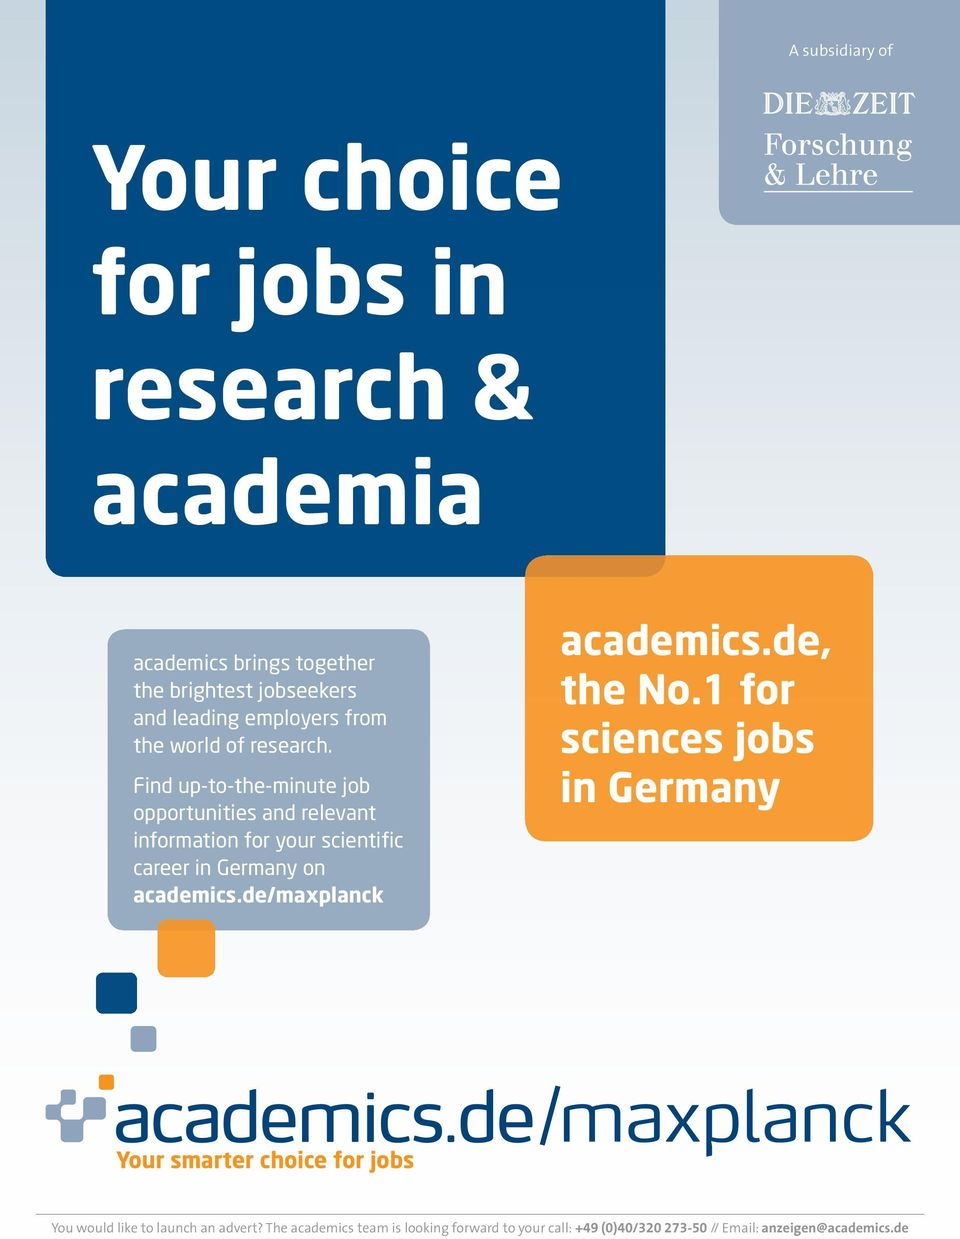 Find up-to-the-minute job opportunities and relevant information for your scientific career in Germany on academics.